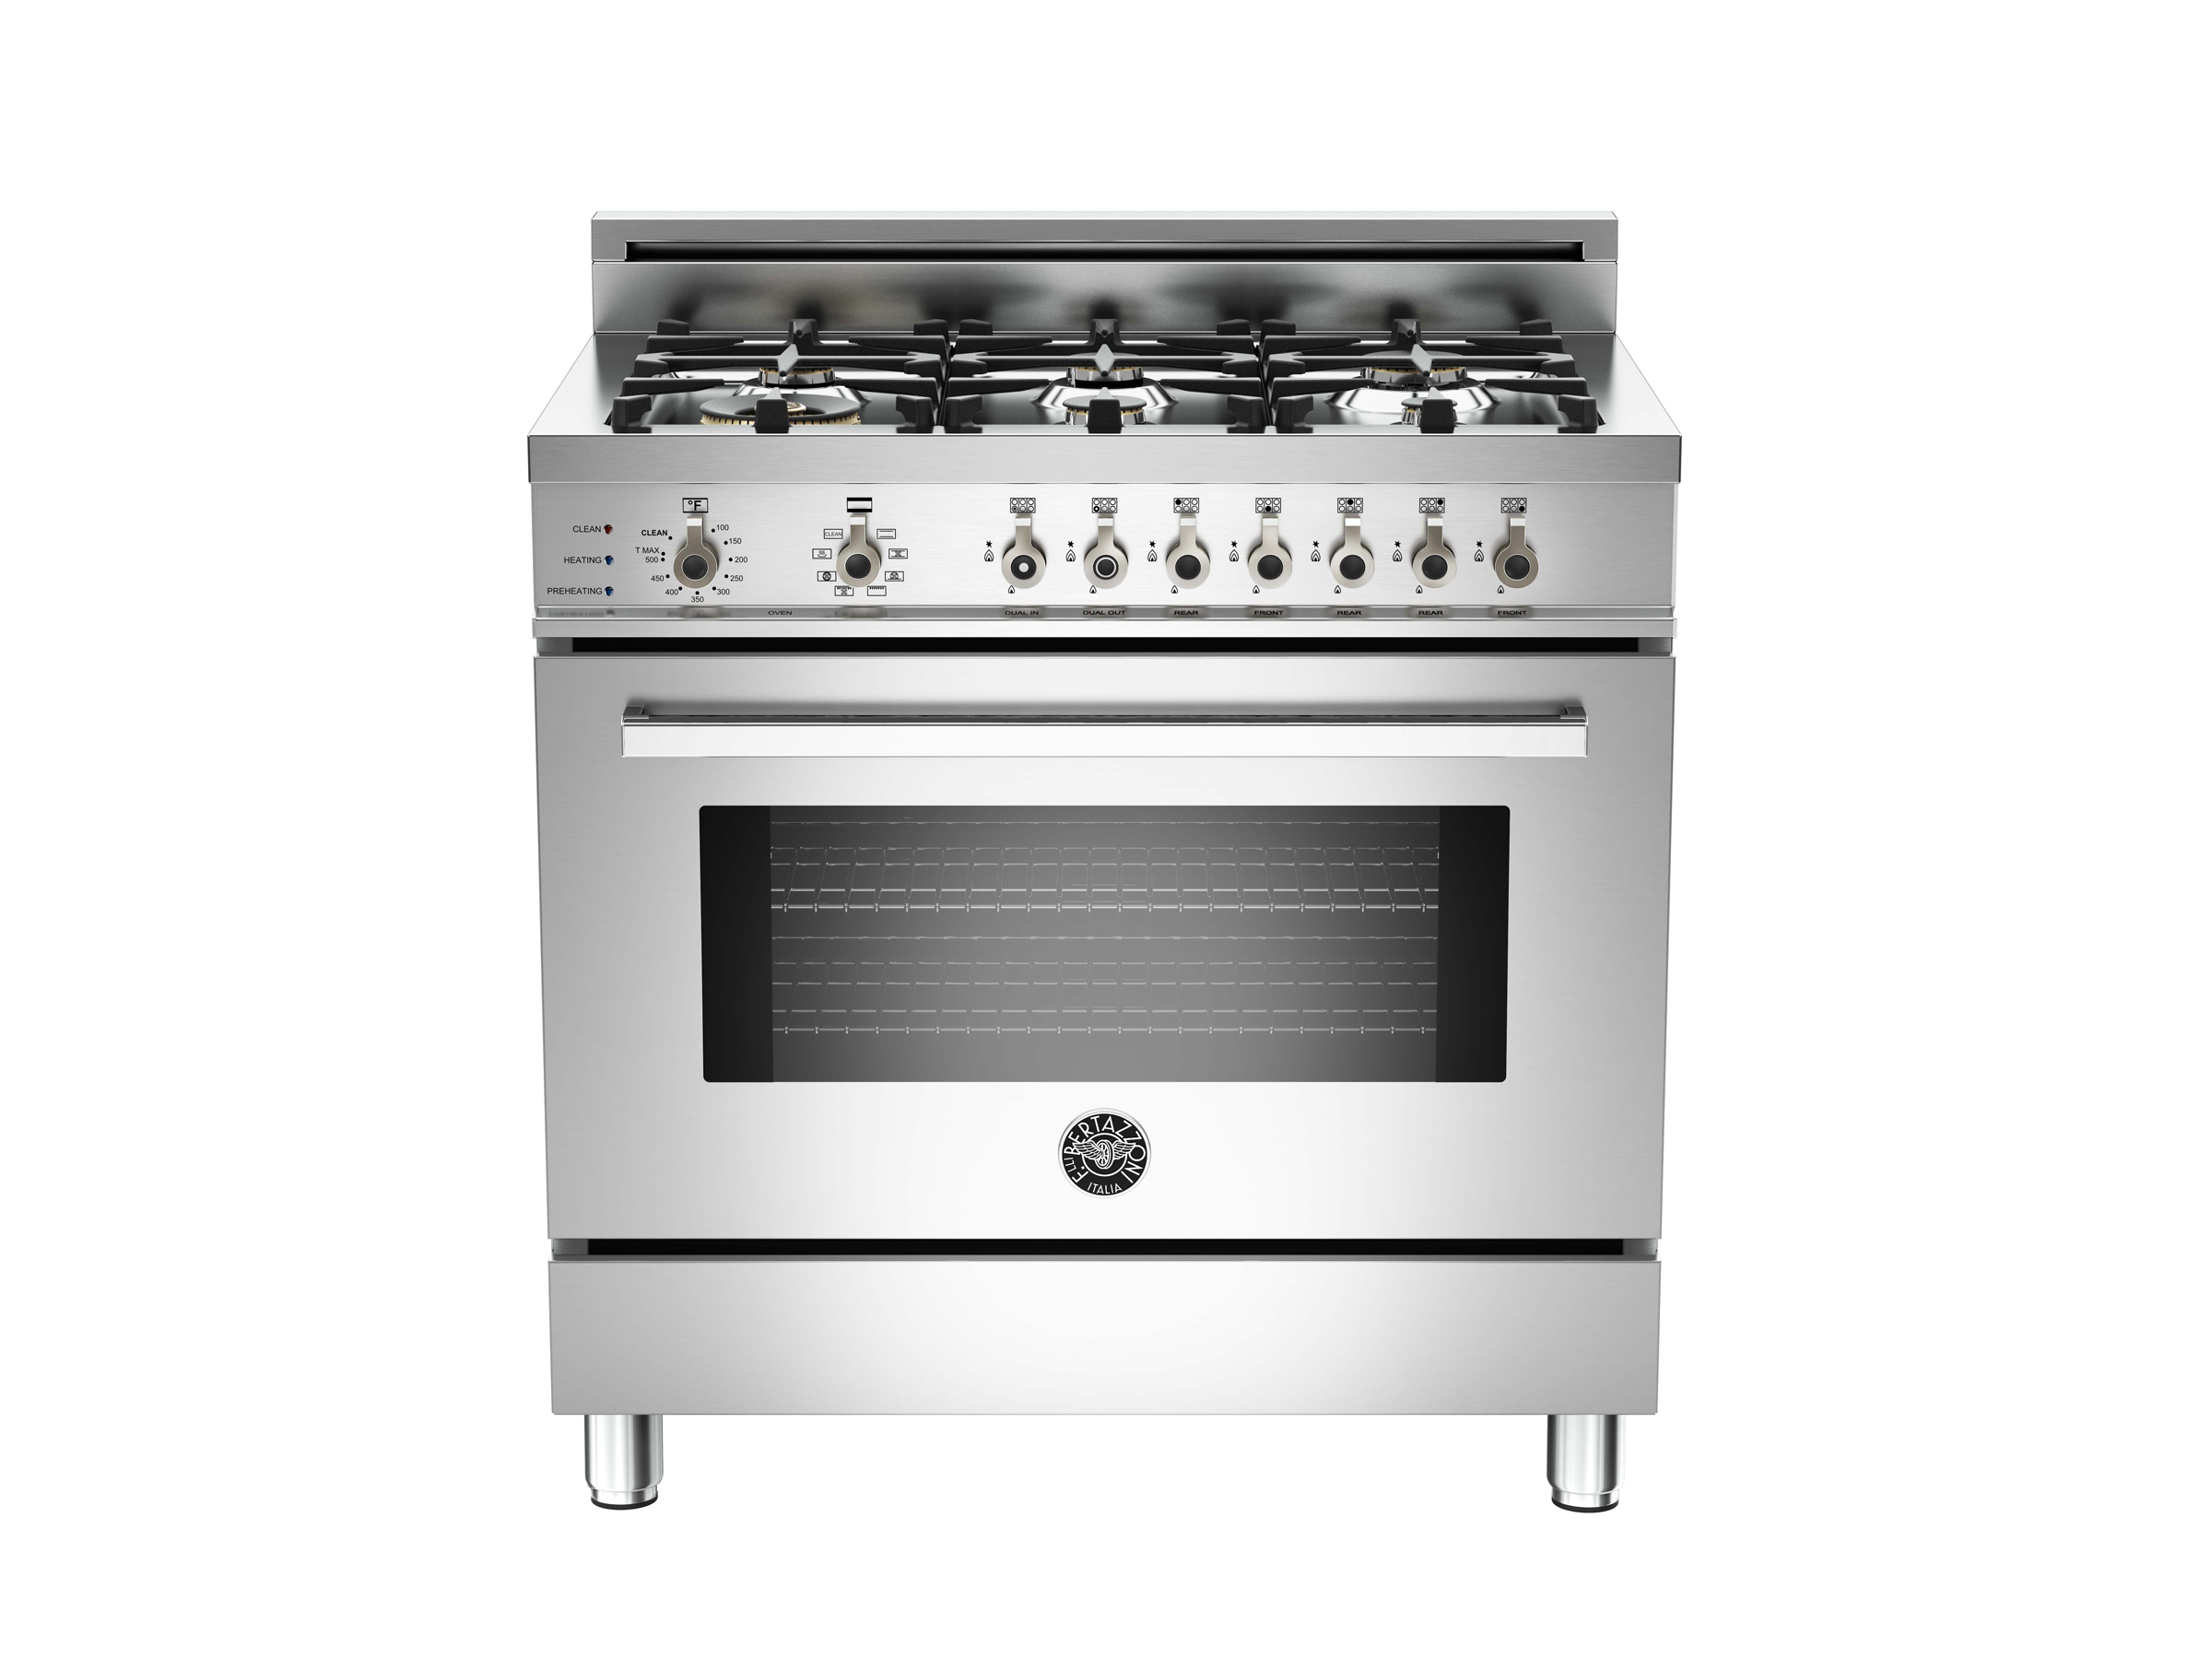 36 6-Burner, Electric Self-Clean Oven | Bertazzoni - Stainless